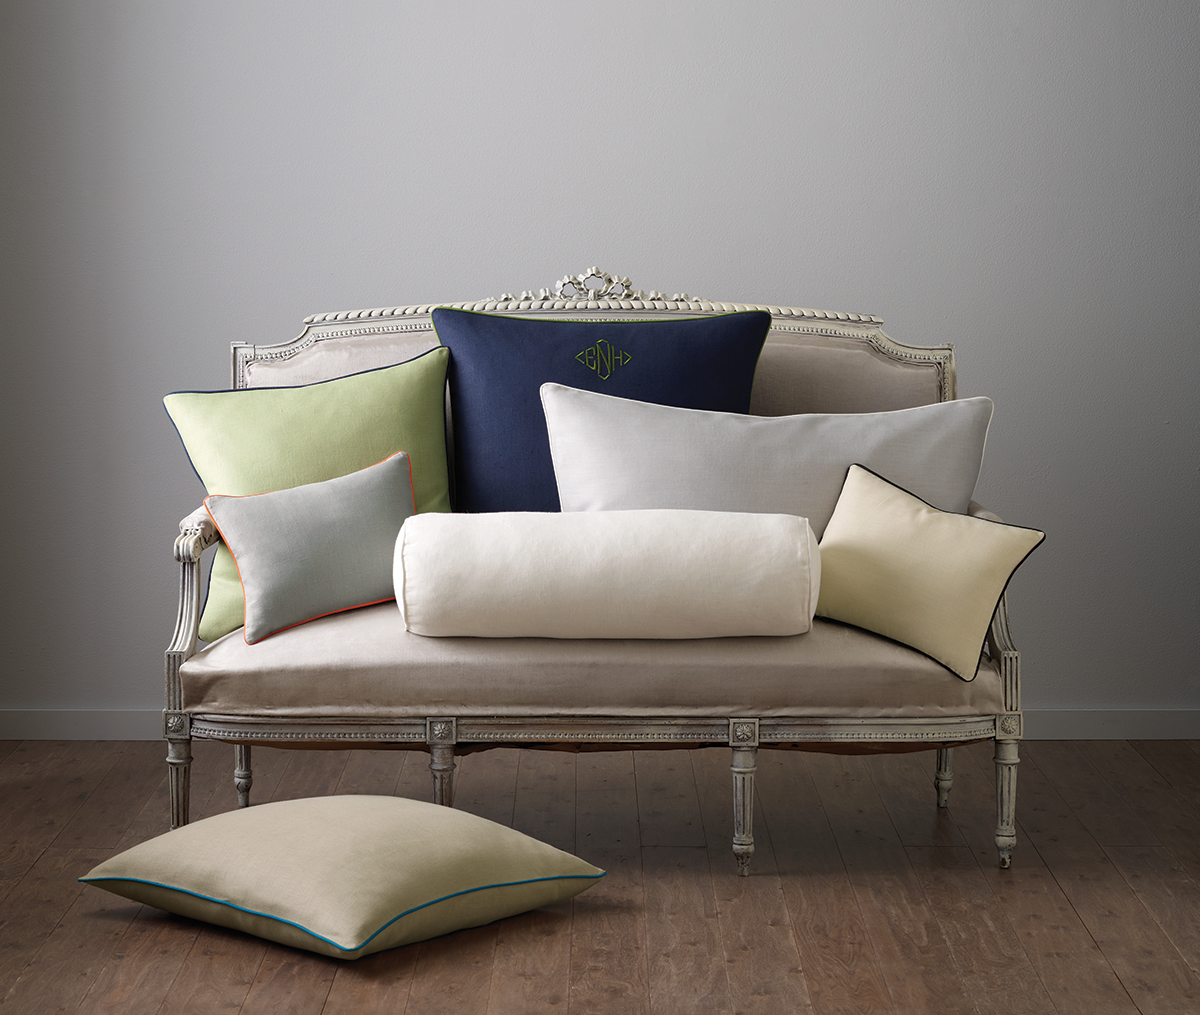 Neutral sofa piled with pillows in shades of blue, green, yellow, and neutrals